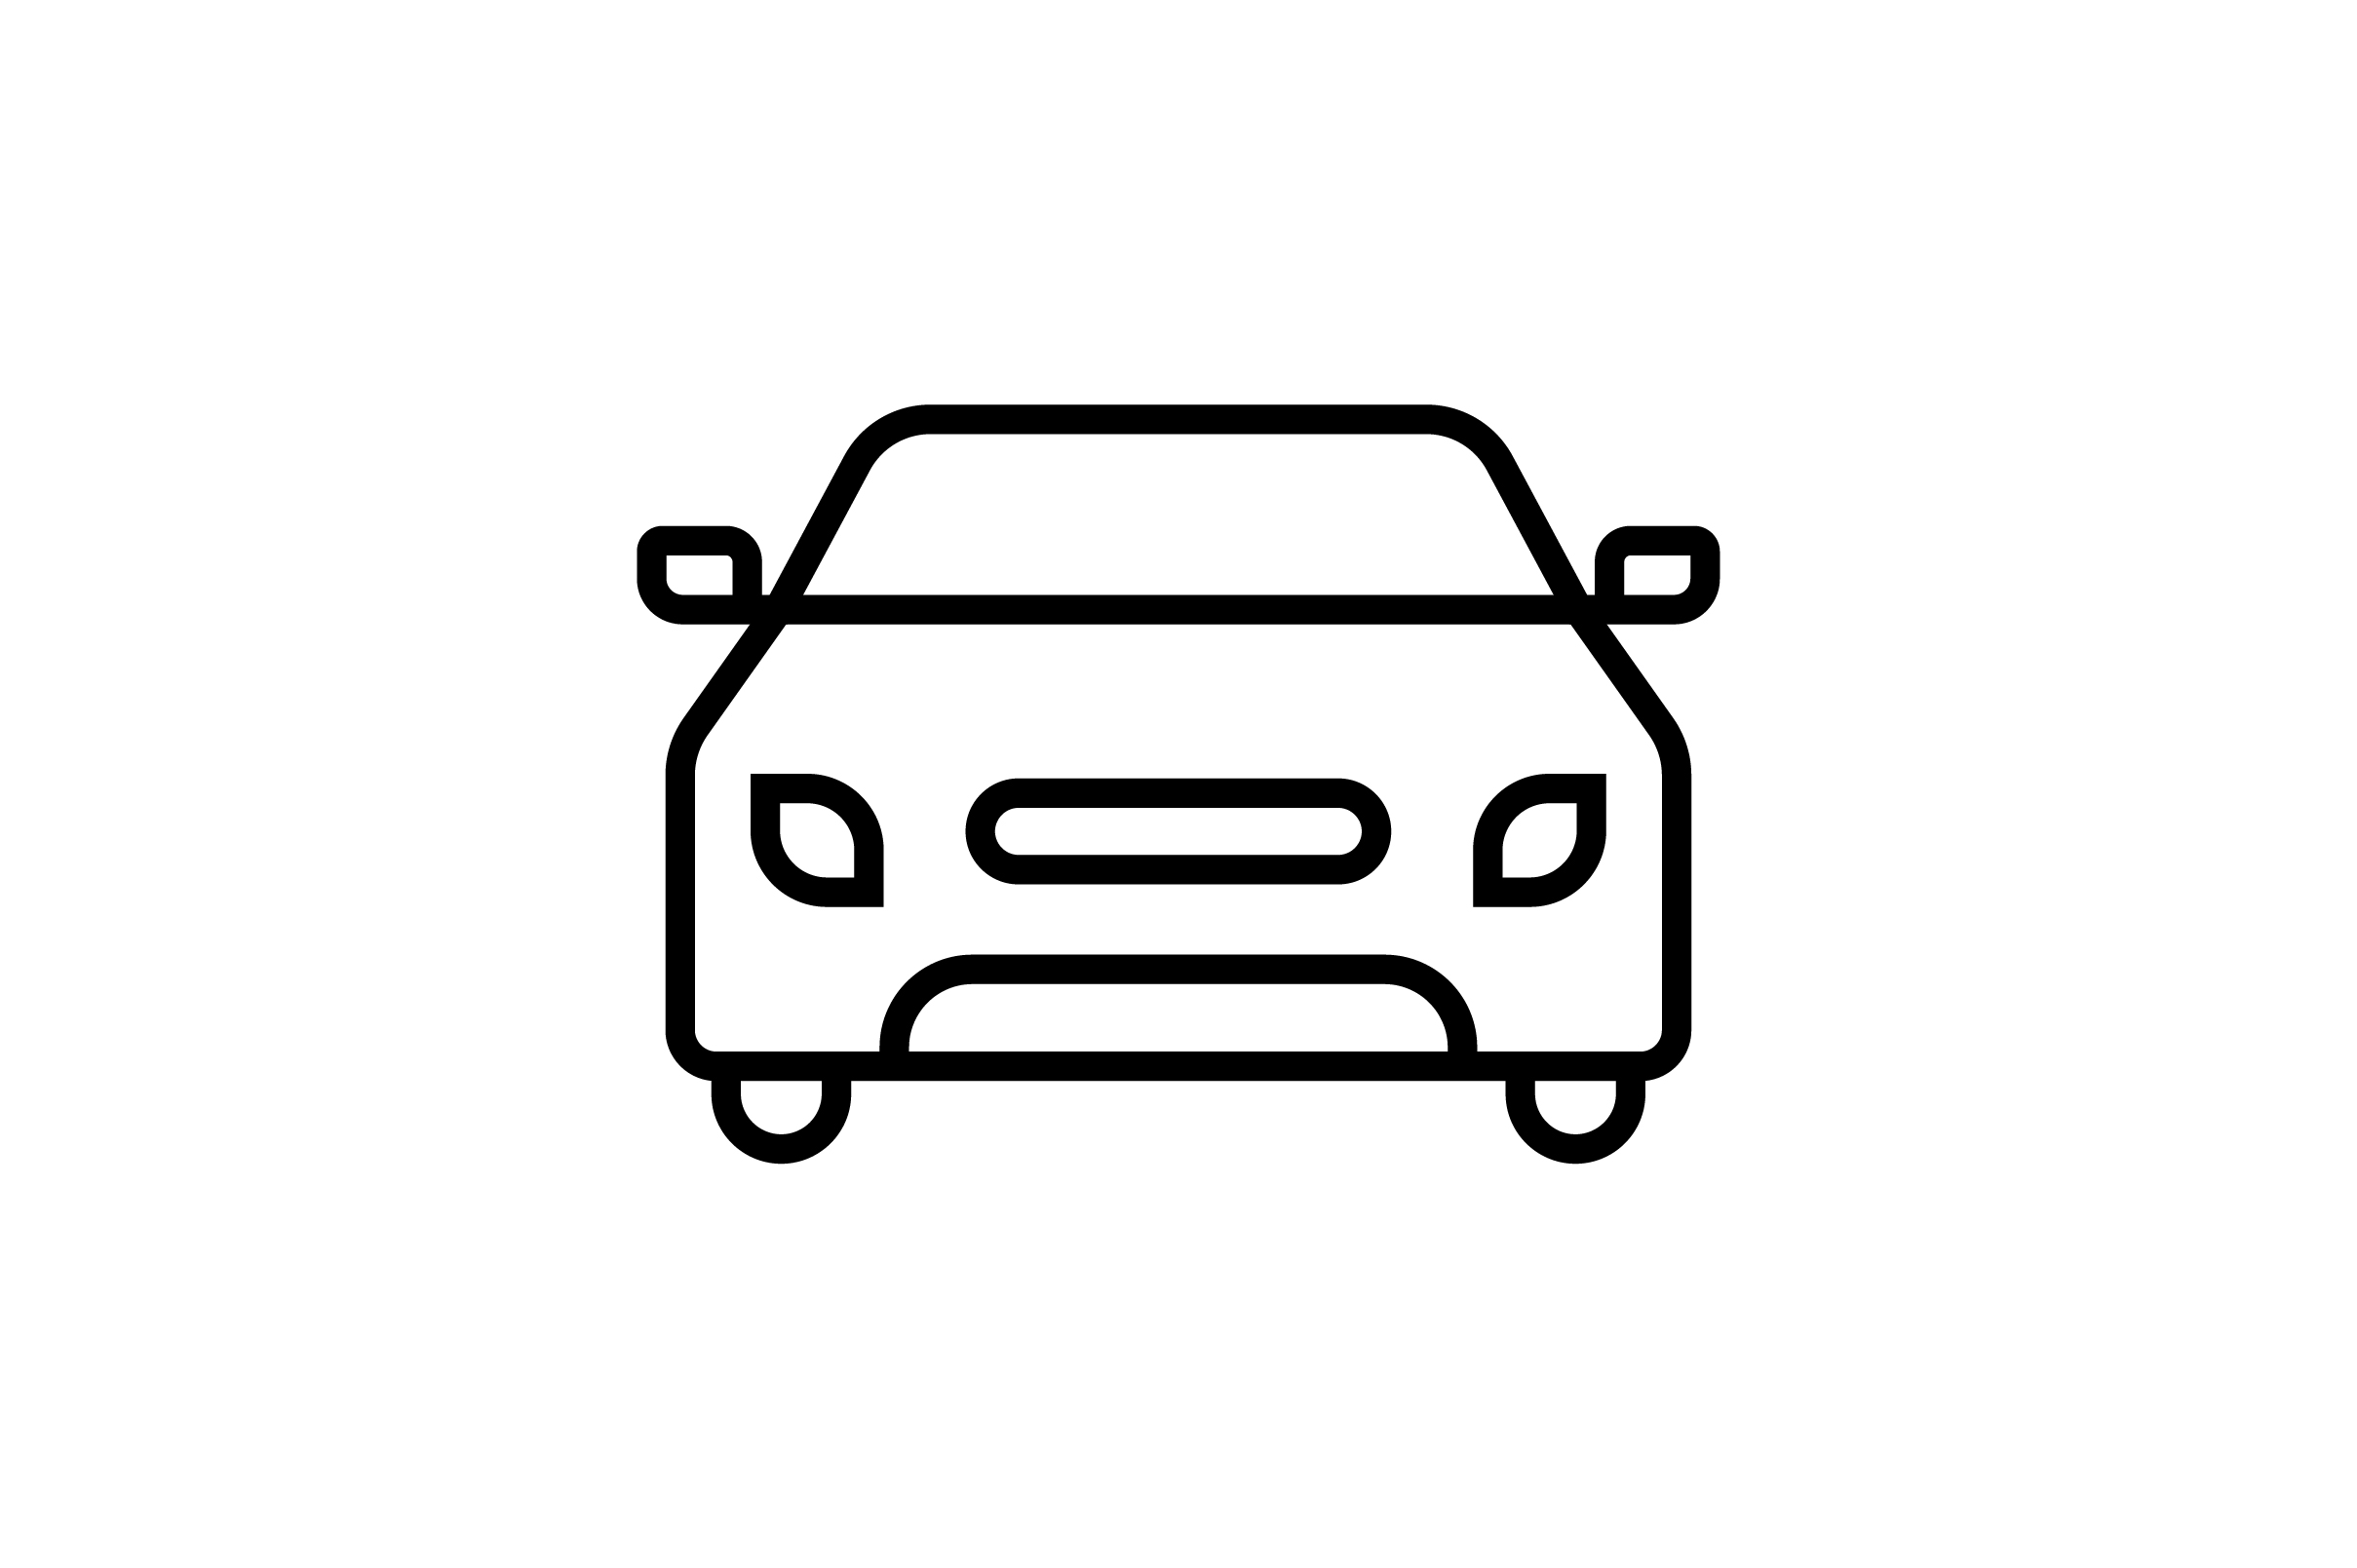 Download Free Car Line Art Vector Icon Graphic By Riduwan Molla Creative Fabrica for Cricut Explore, Silhouette and other cutting machines.